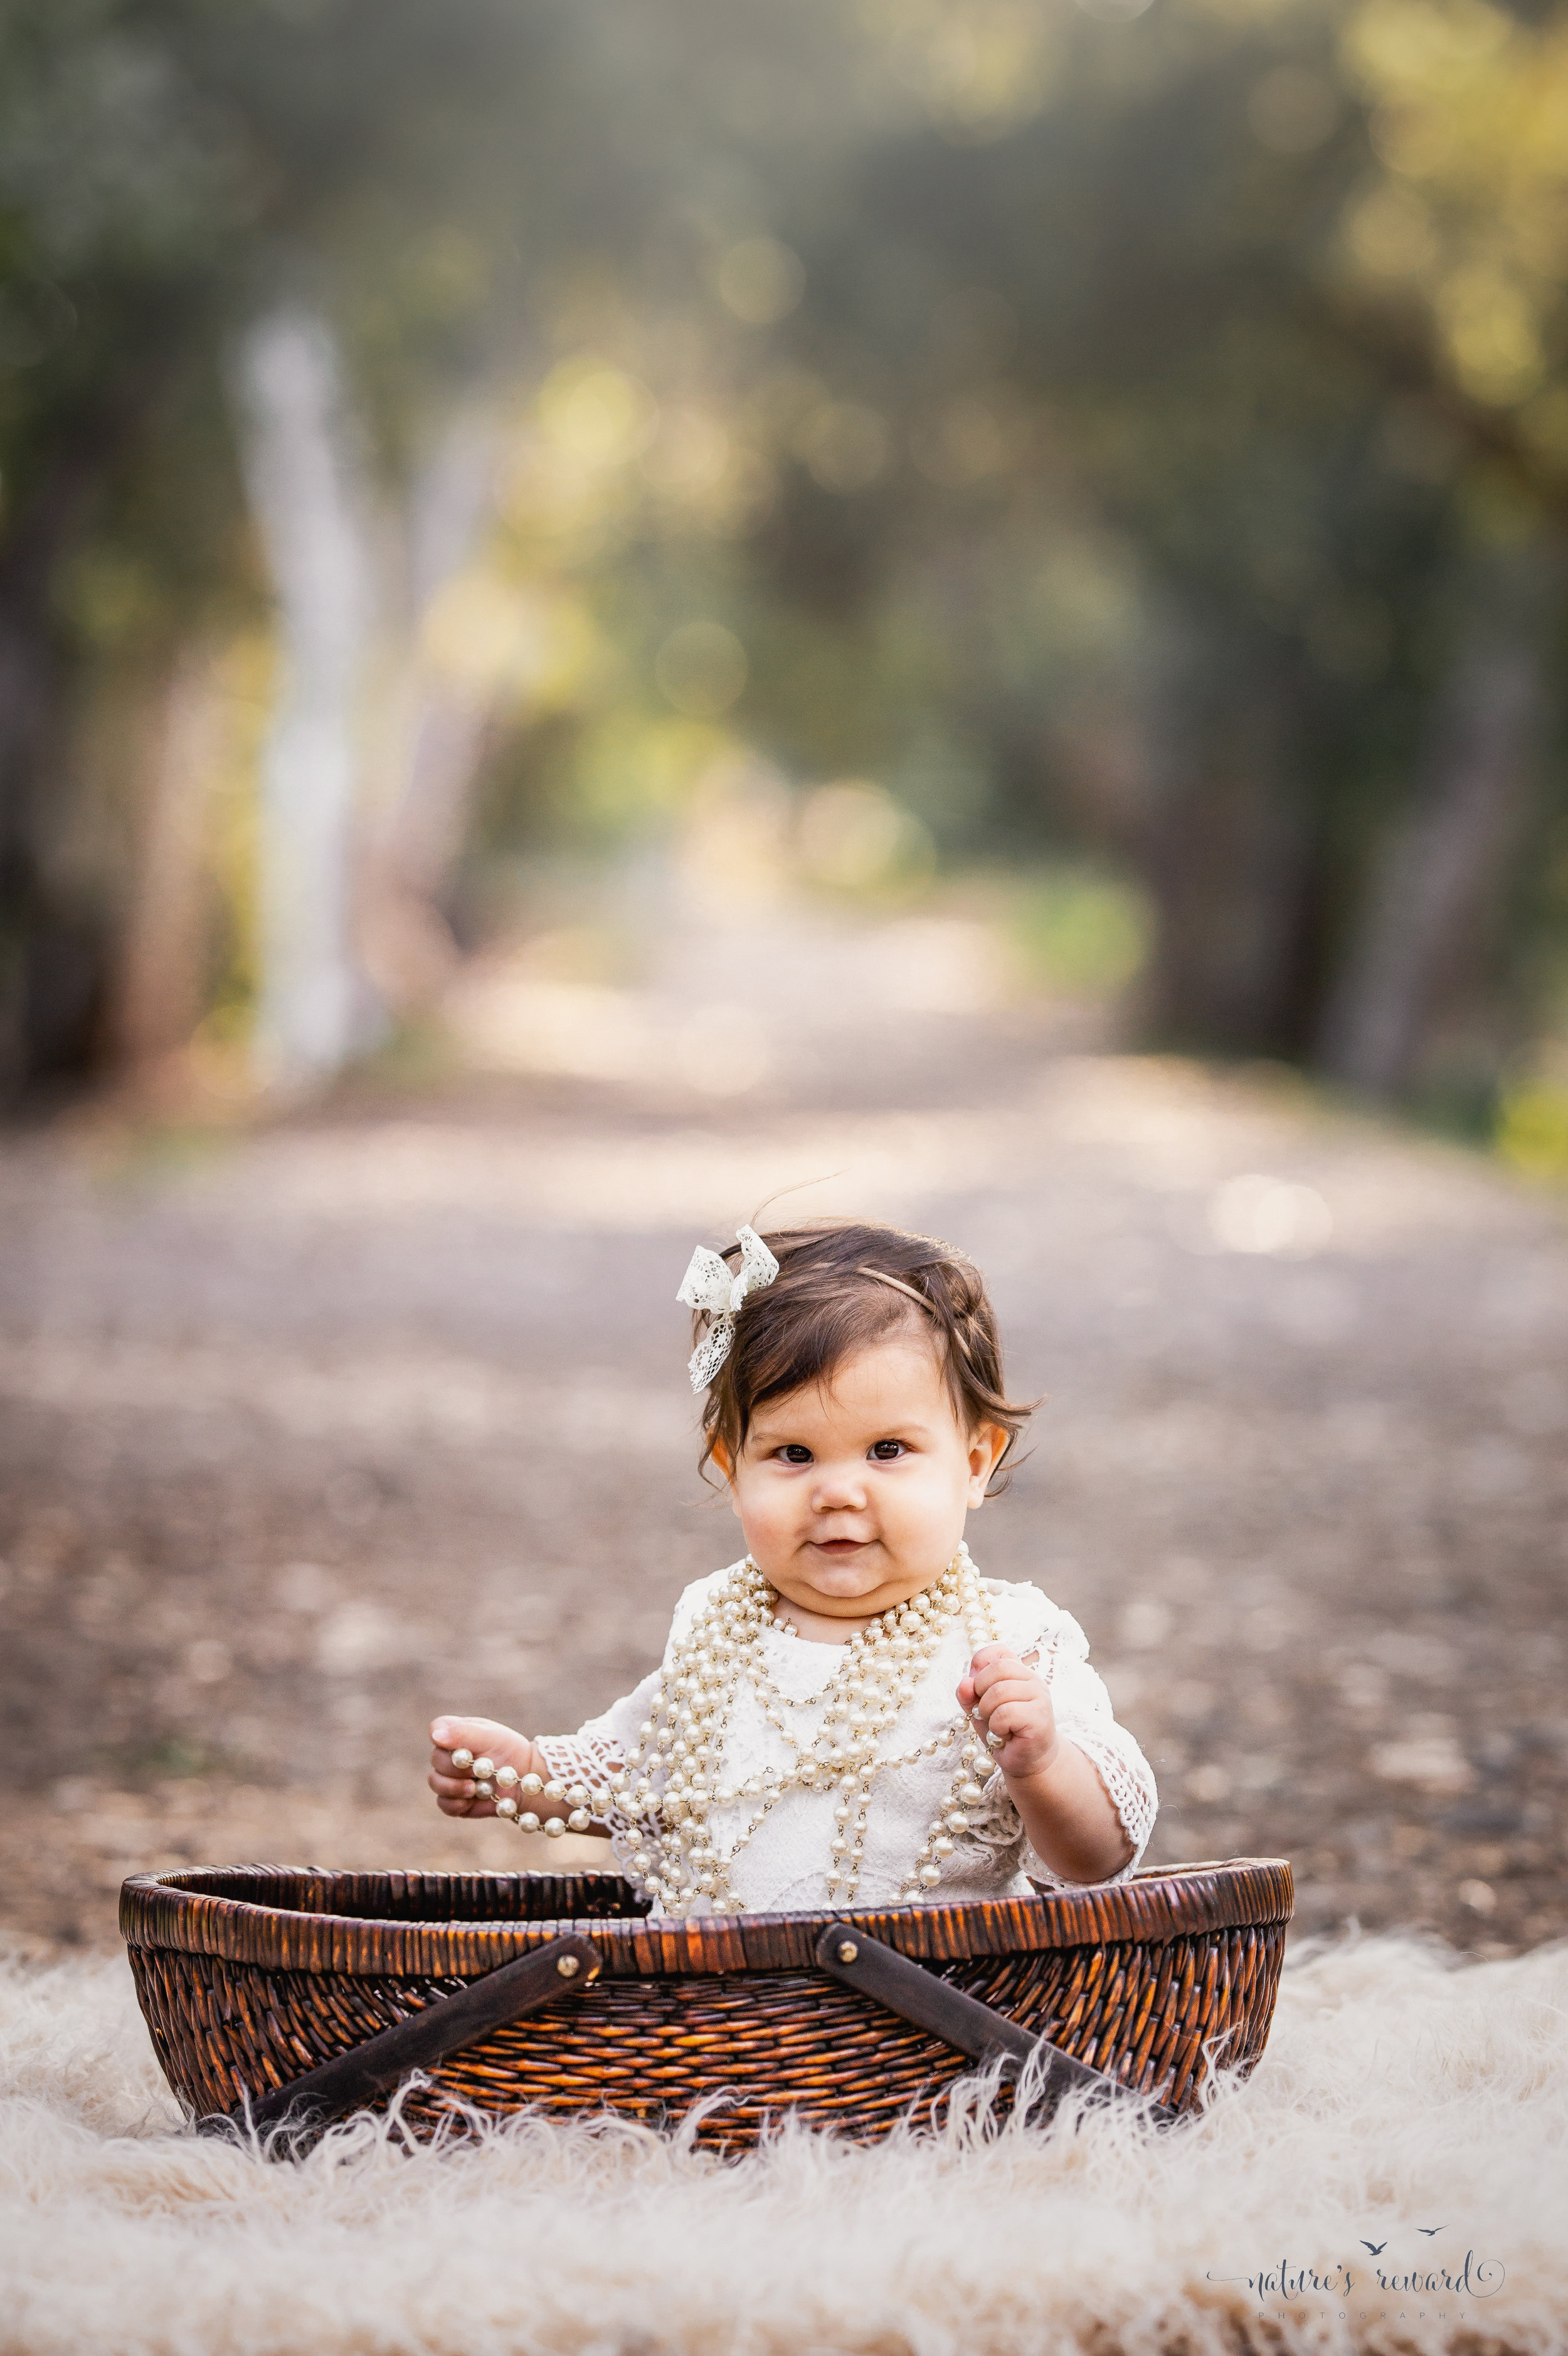 Baby girl sits while wearing a lace romper, pearls,and flower crown on a tree lined path in this portrait by Nature's Reward Photography